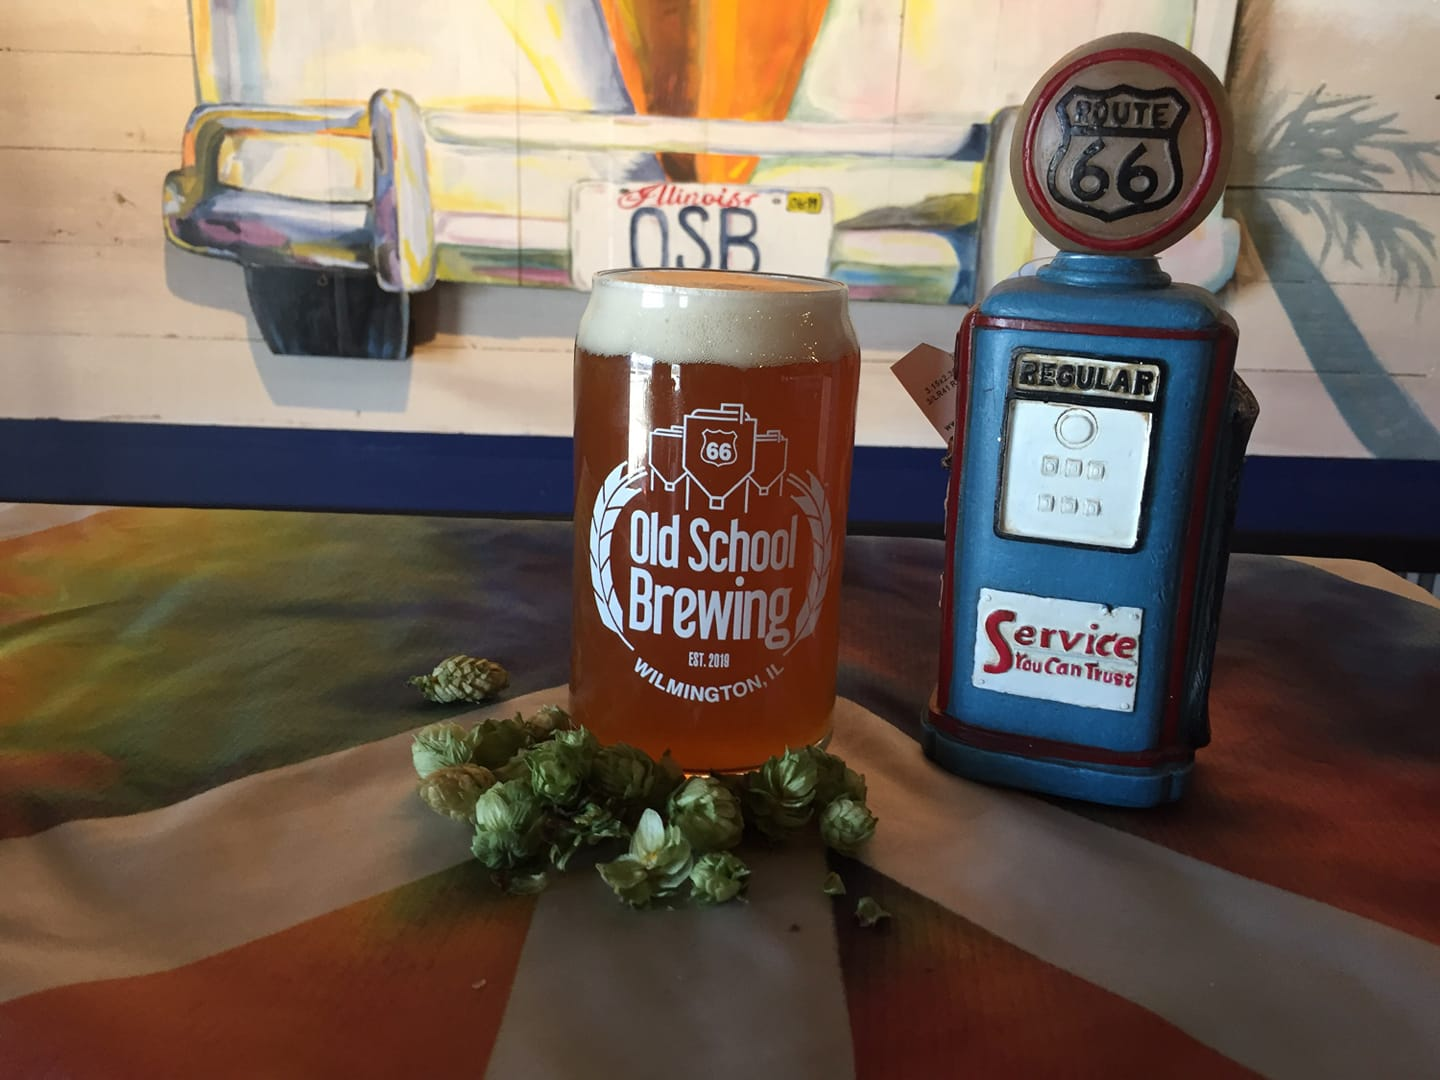 A glass of The First Days from Rt66 Old School Brewing, next to a mini replica Rt 66 Gas Pump